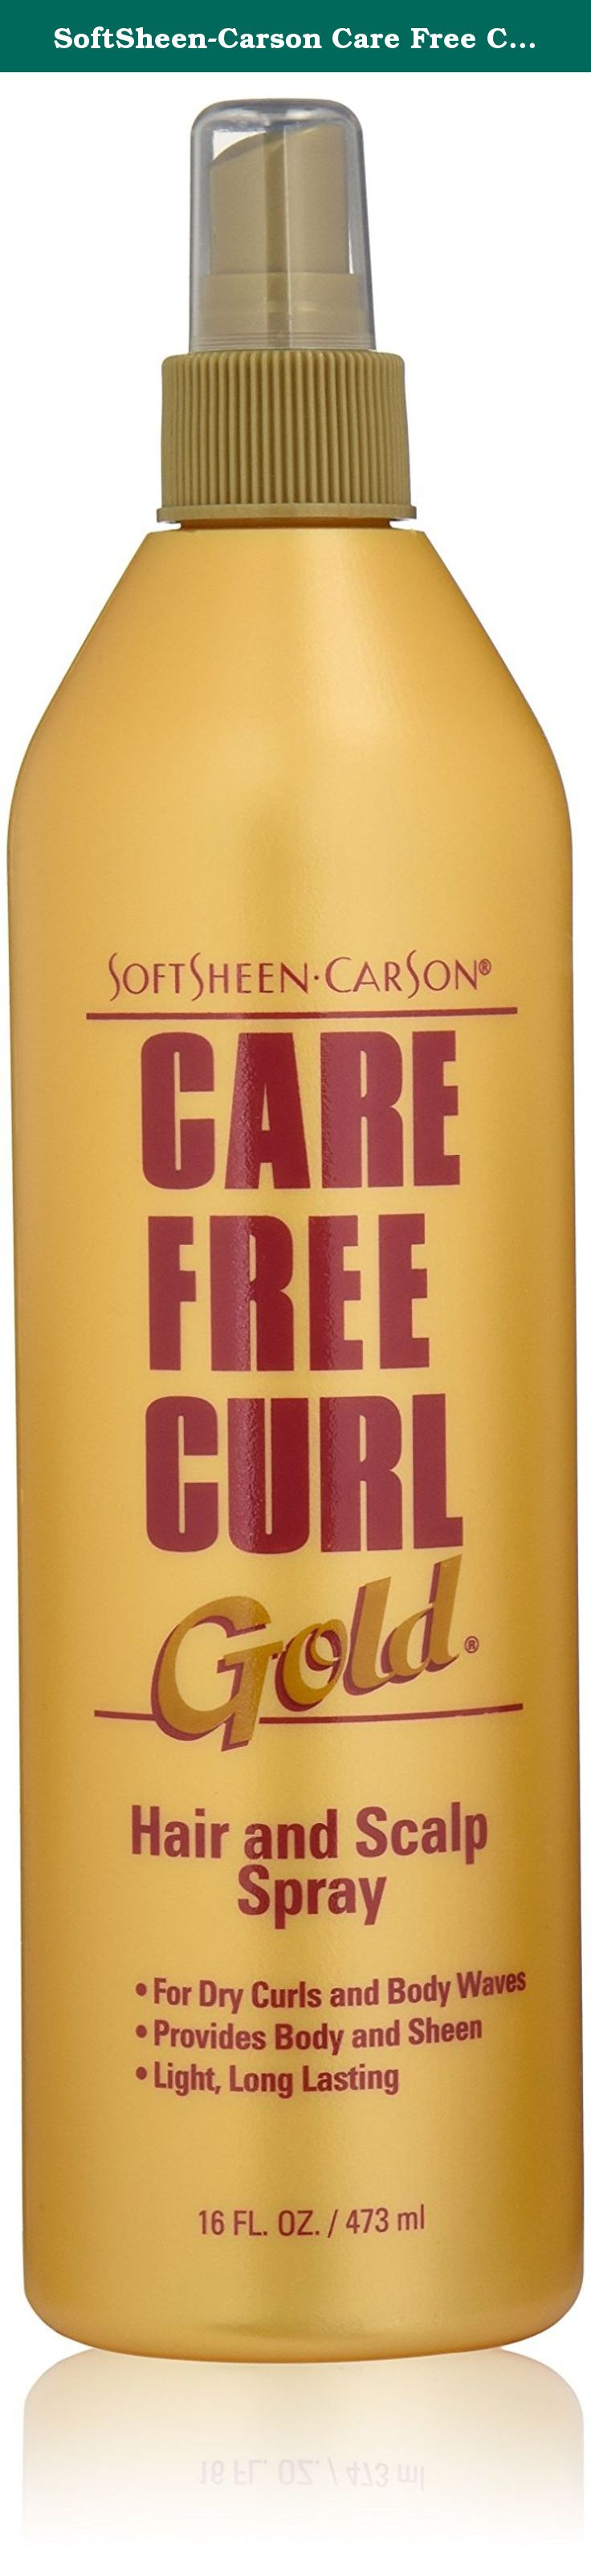 SoftSheenCarson Care Free Curl Gold Hair and Scalp Spray